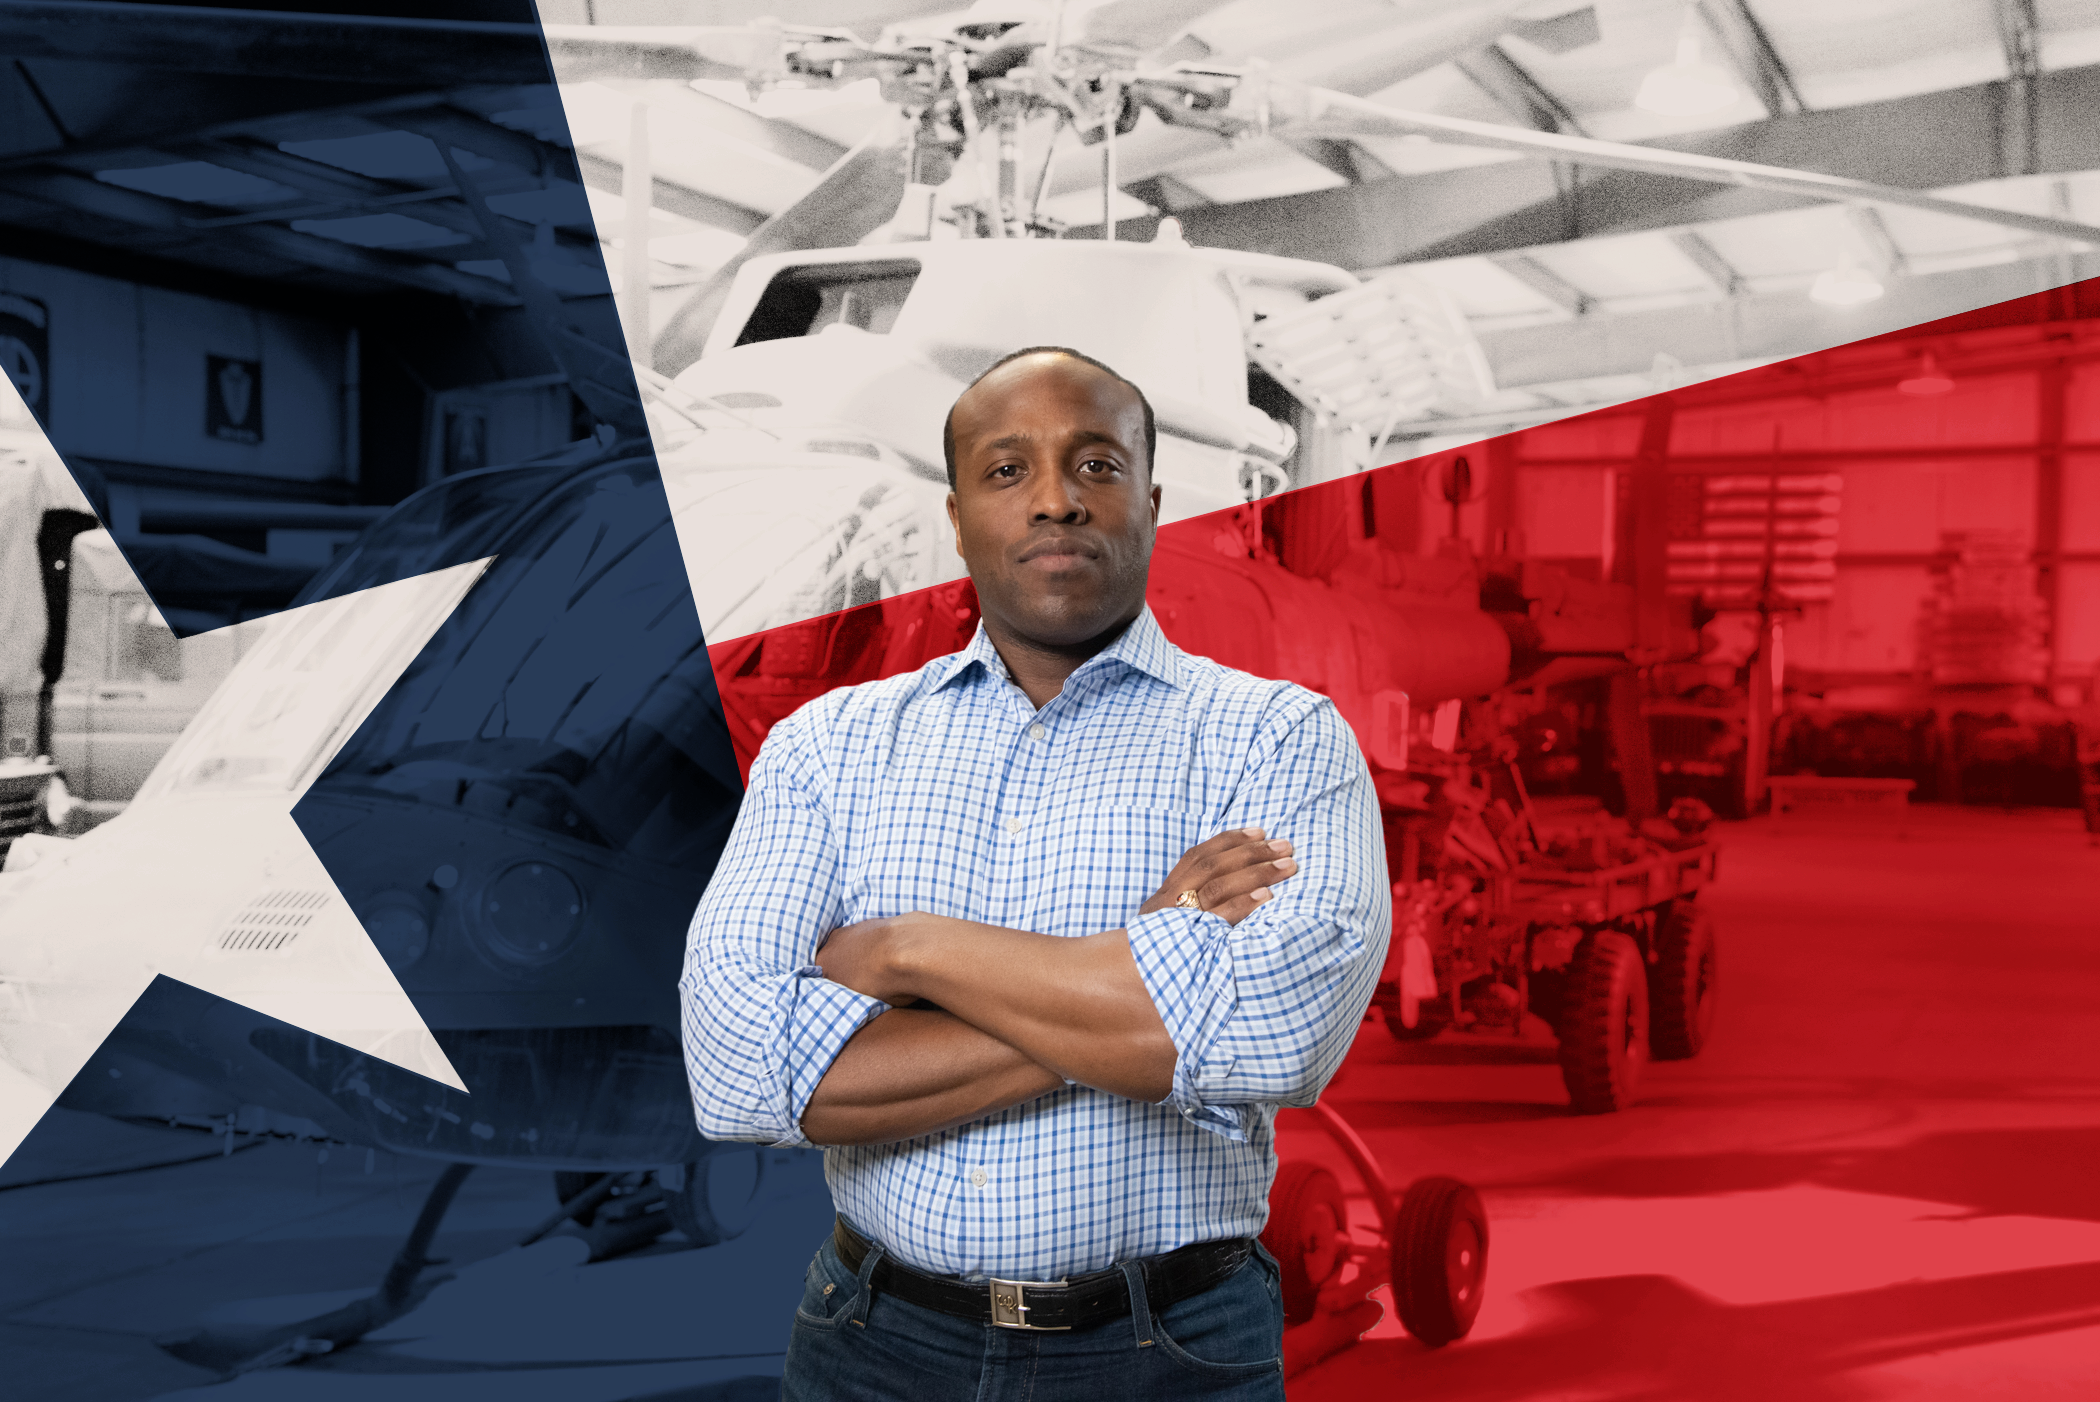 This American hero could be the next U.S. Congressman from Texas -- but only with your help!